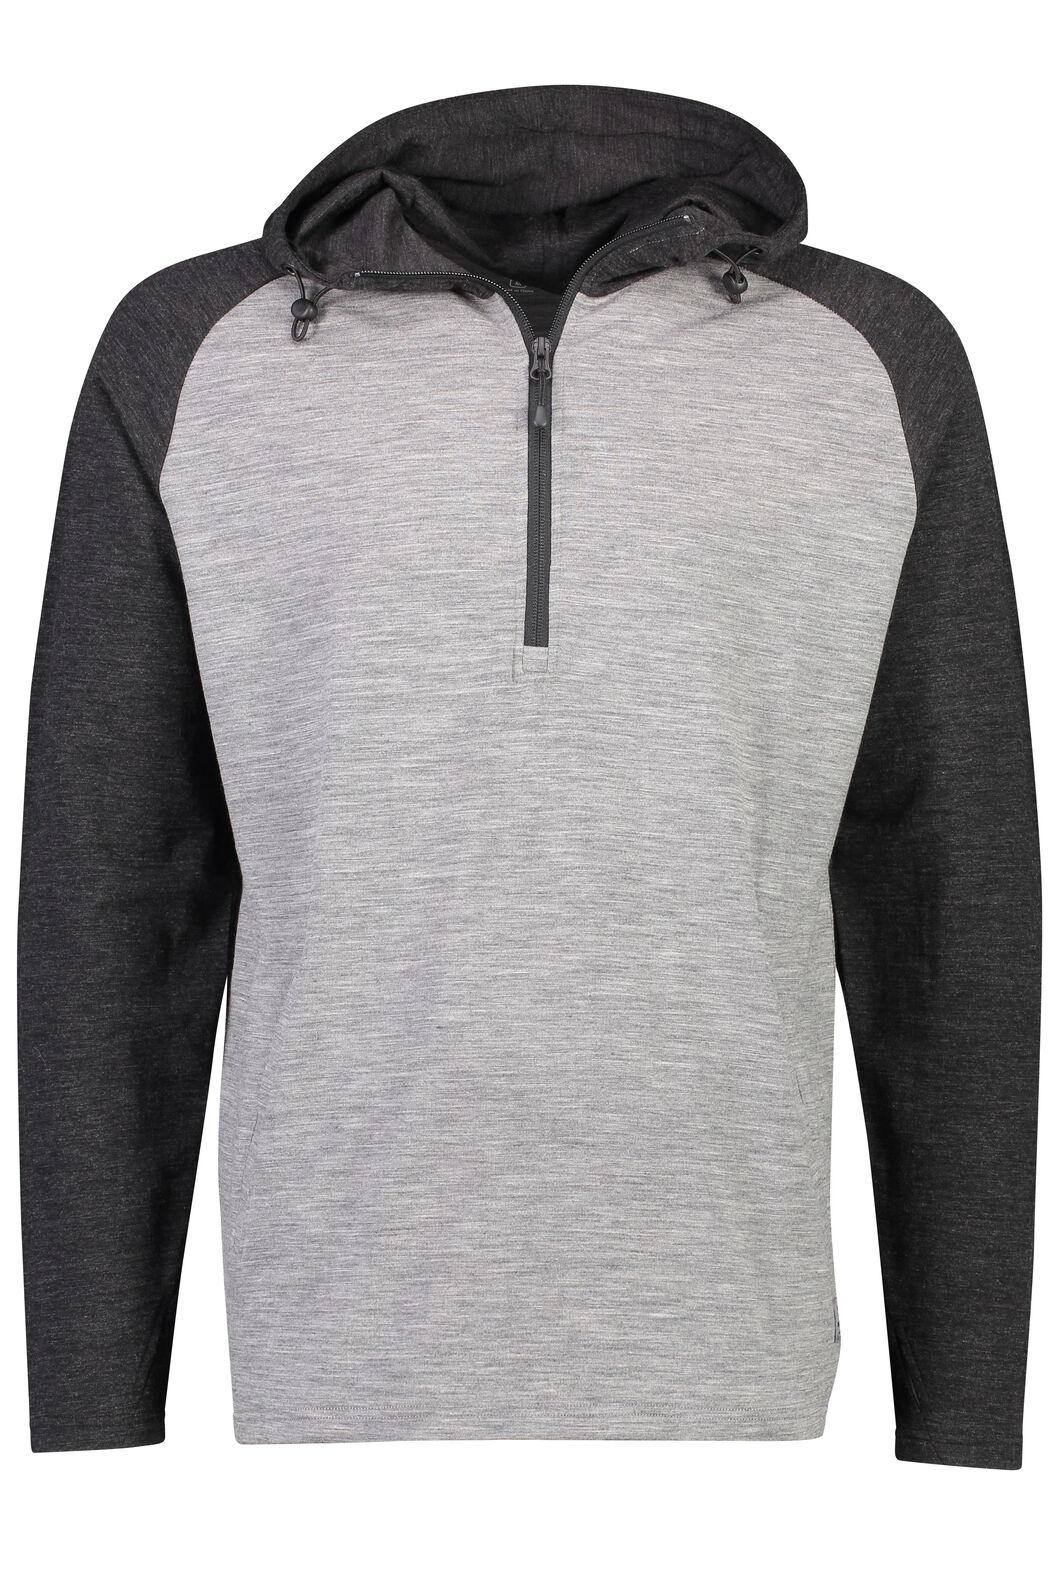 Macpac Merino 230 Long Sleeve Hoody - Men's, Grey Marle/Charcoal Marle, hi-res